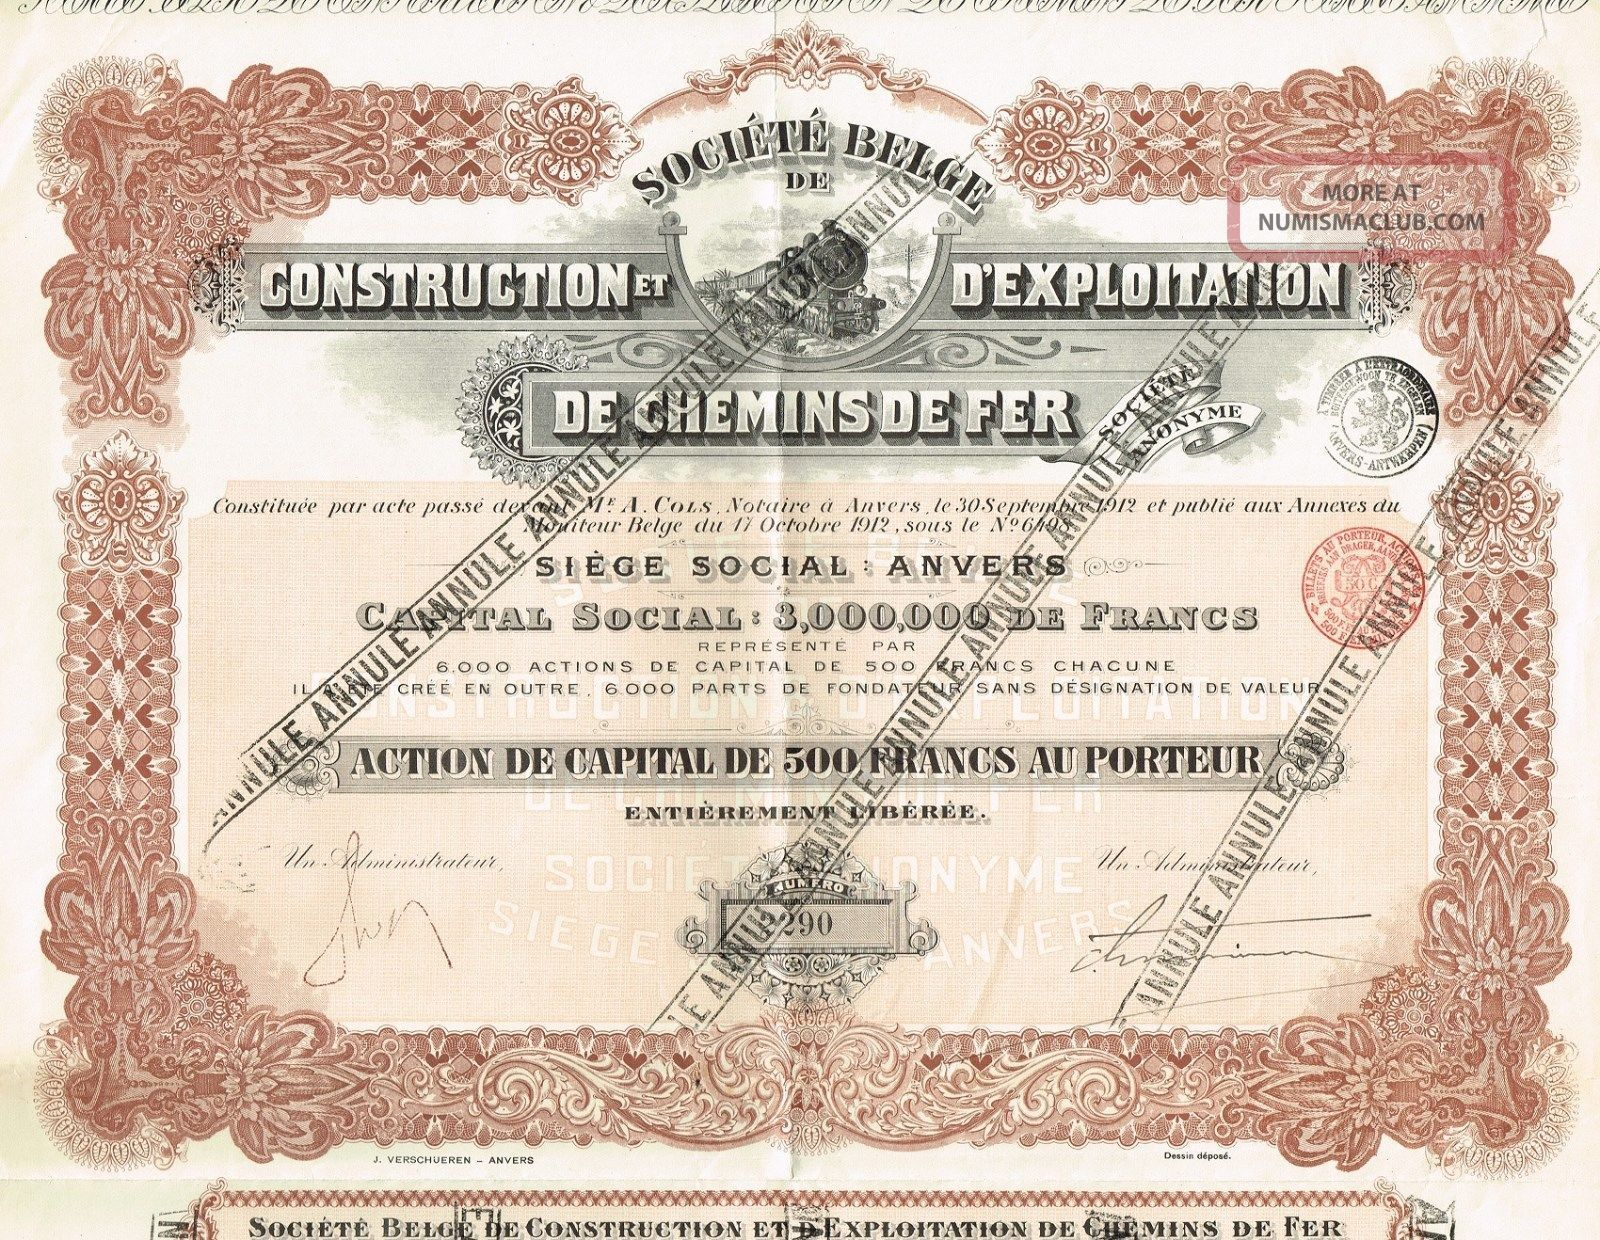 Belgium Railway Construction & Exploration Company Stock Certificate World photo